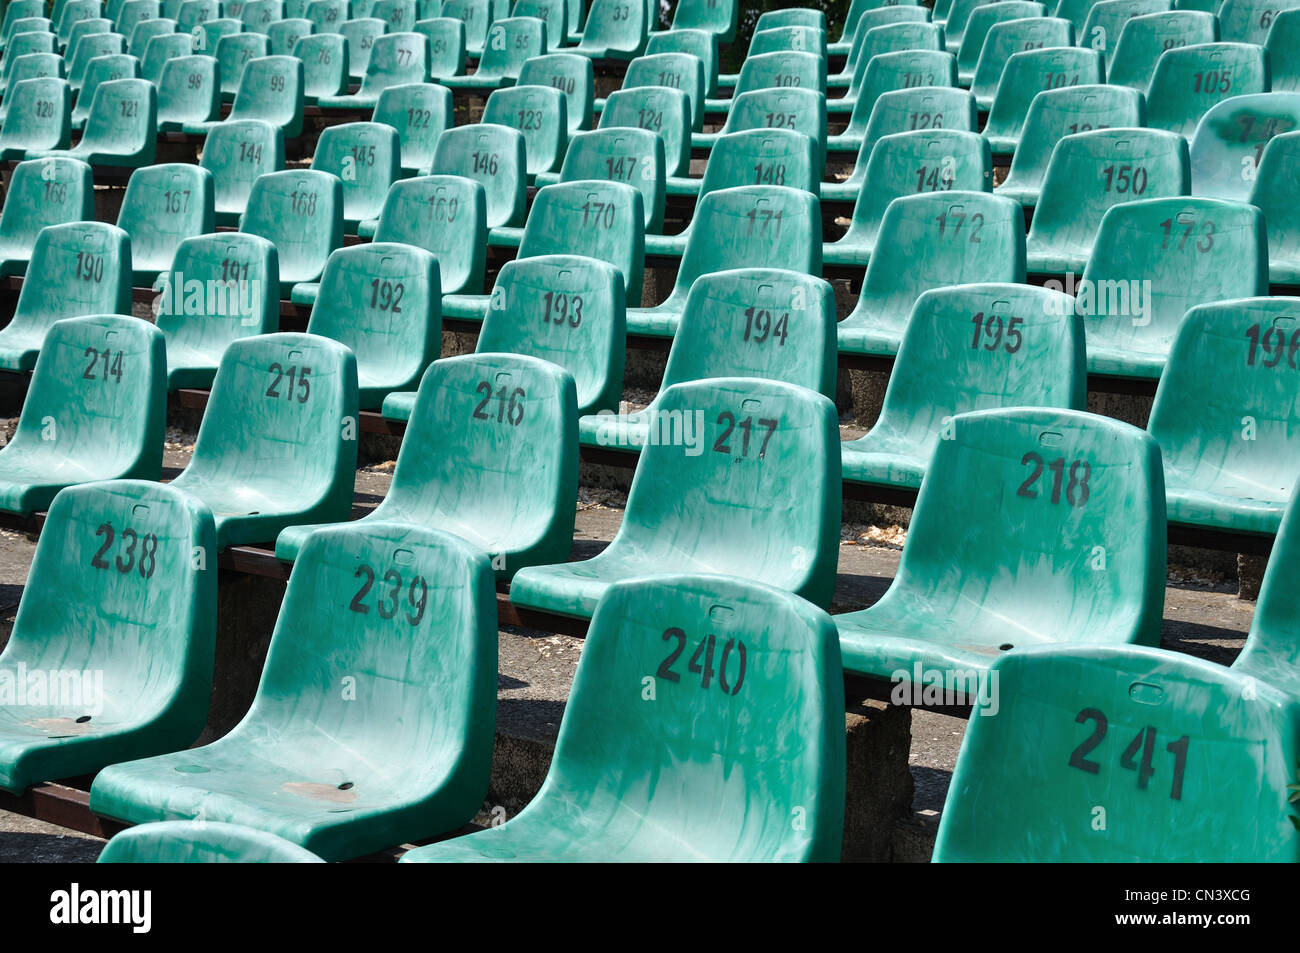 Green numbered seats at a stadium - Stock Image